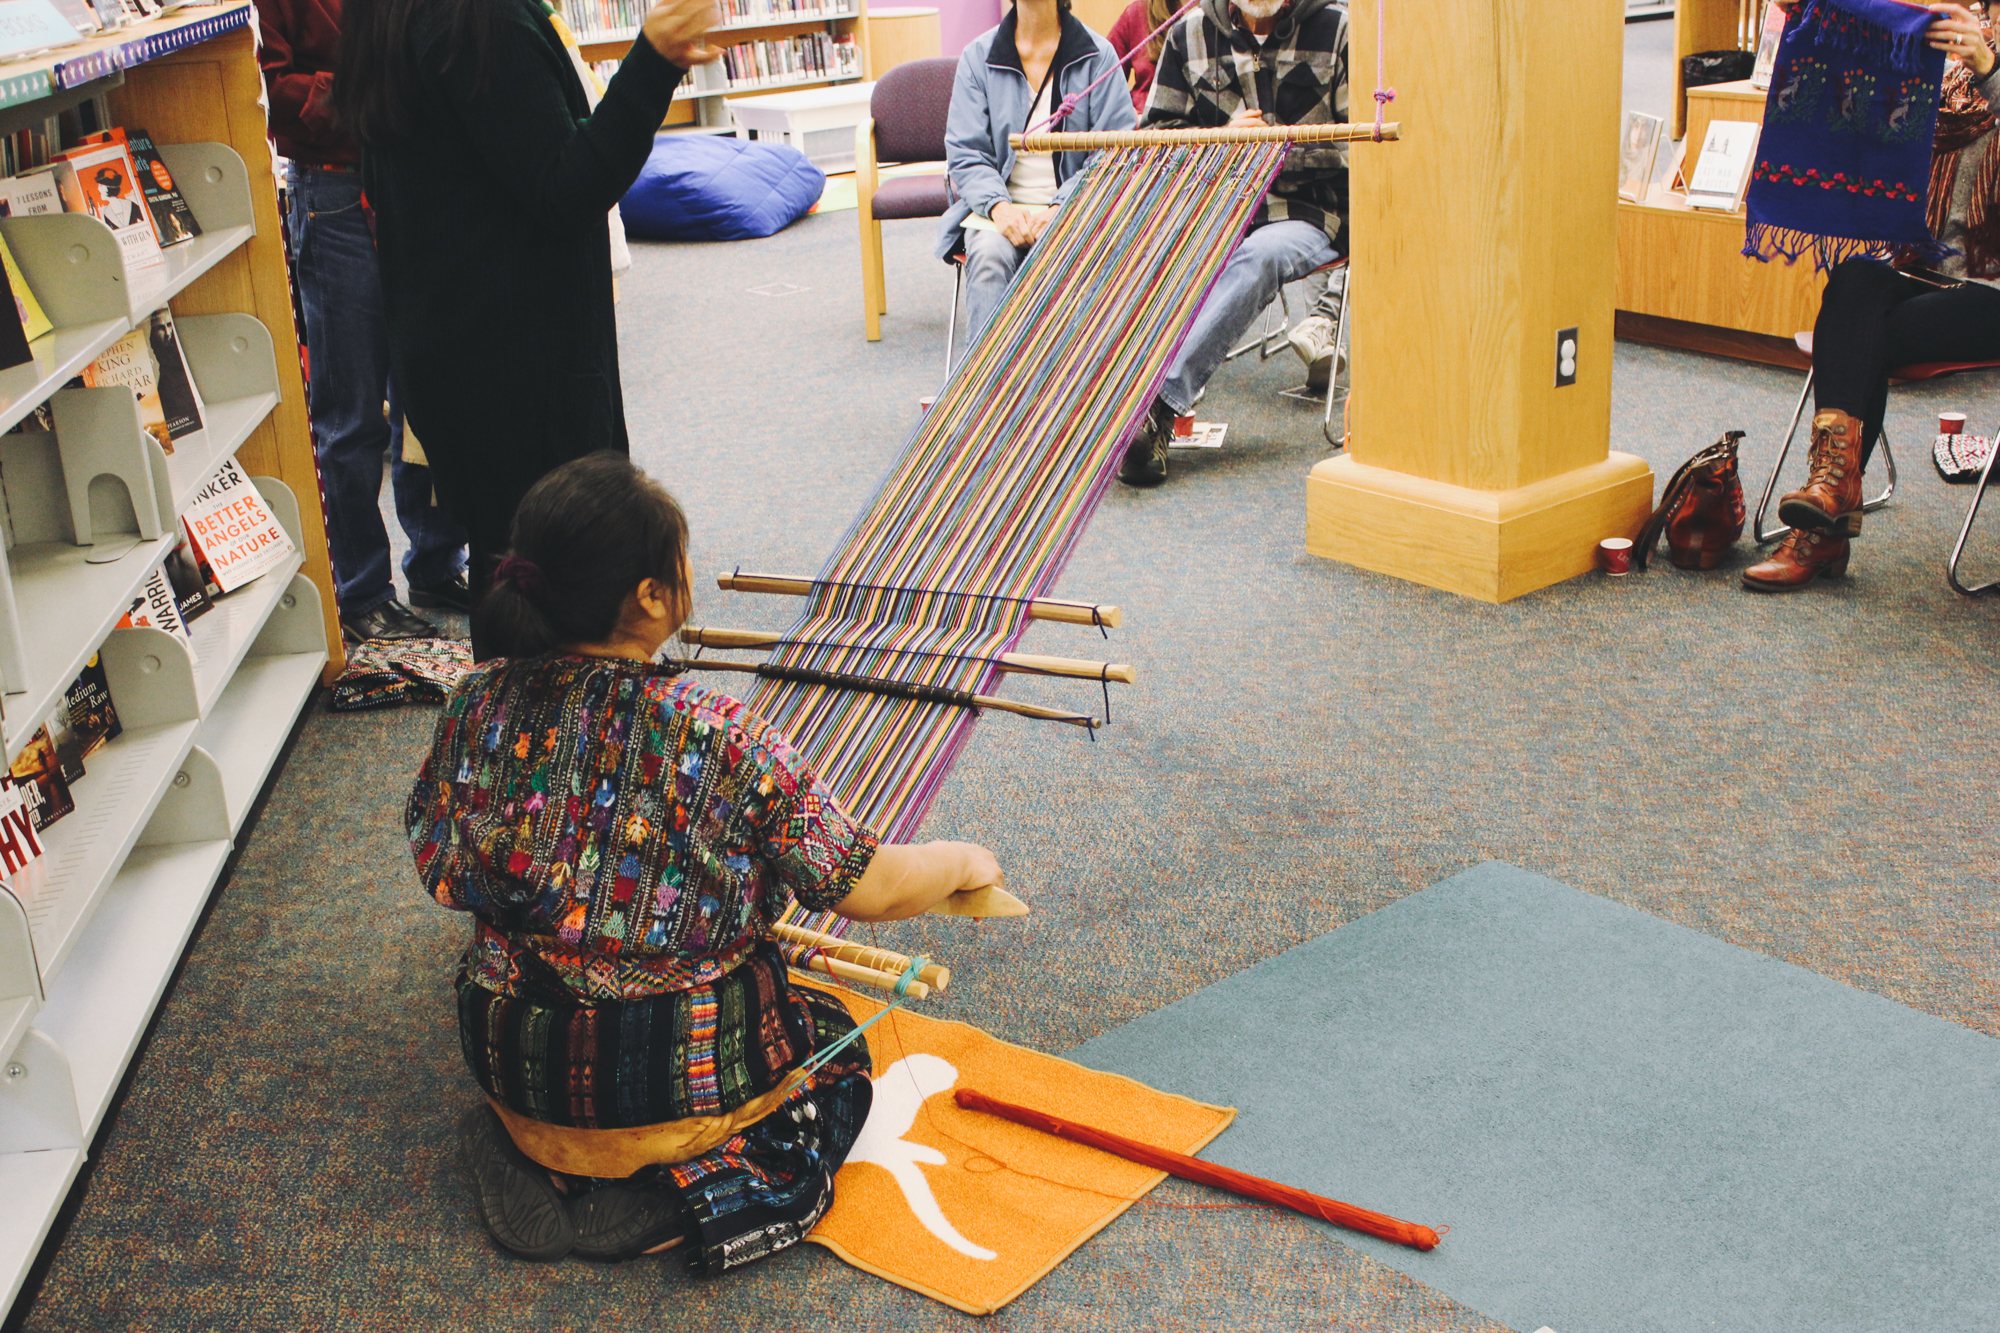 cultural-education-spokane-public-library